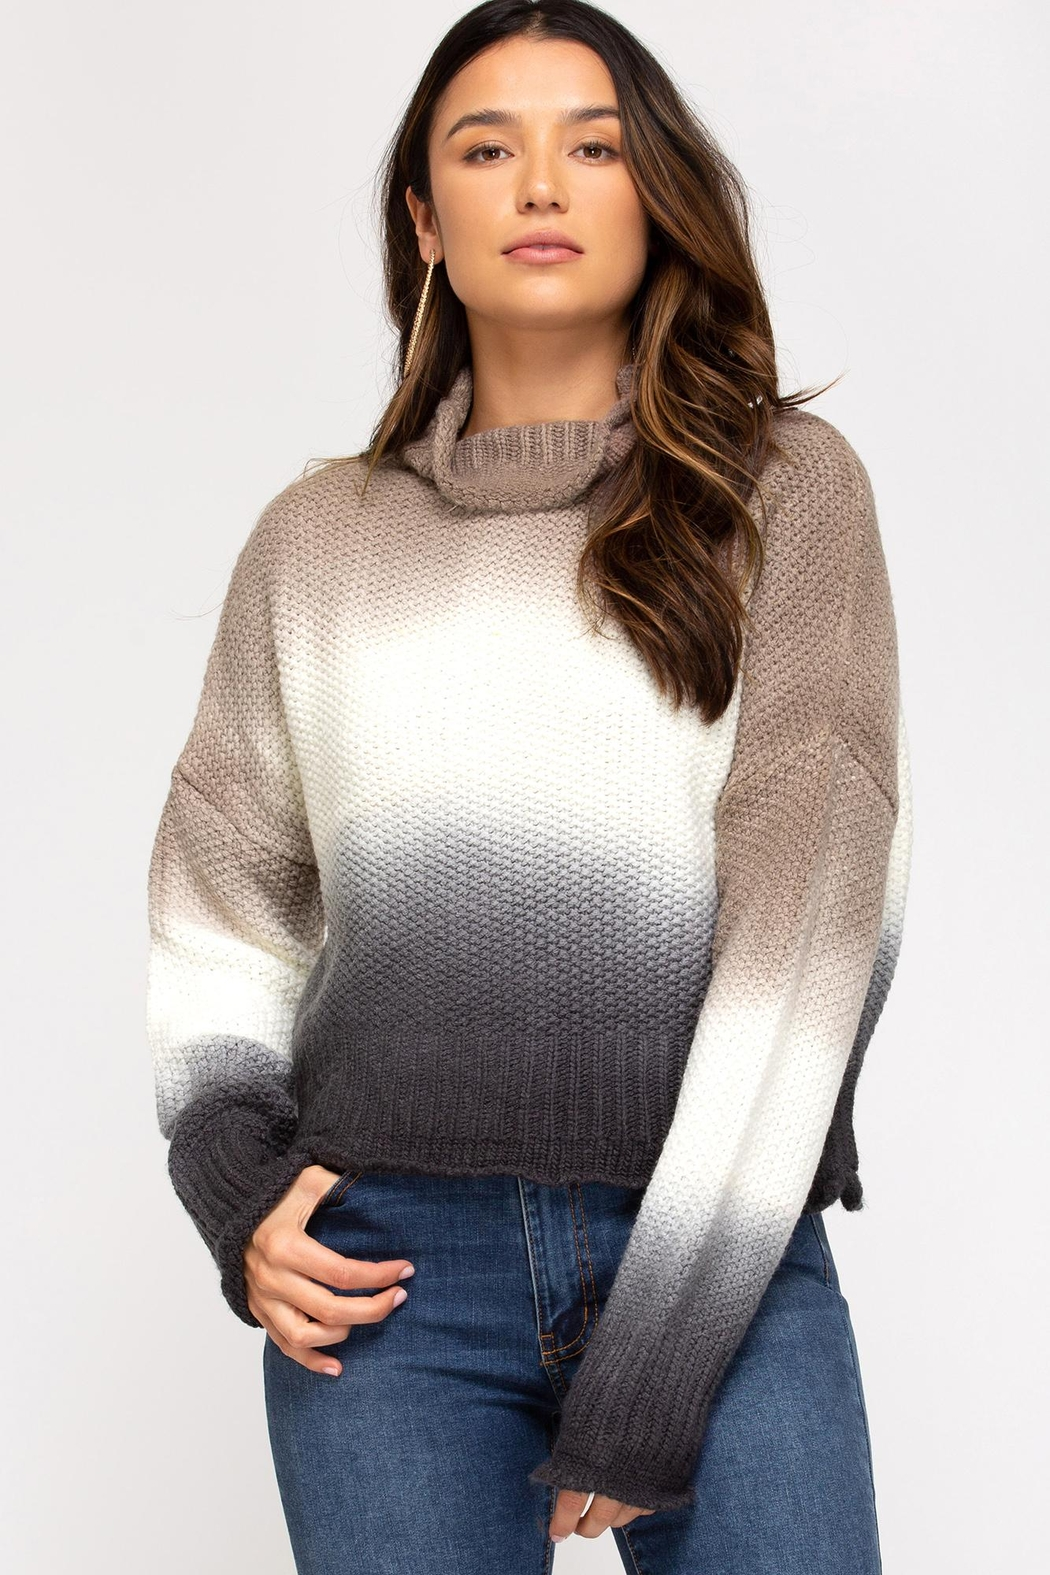 She + Sky Hi-Neck Dip-Dyed Sweater - Main Image